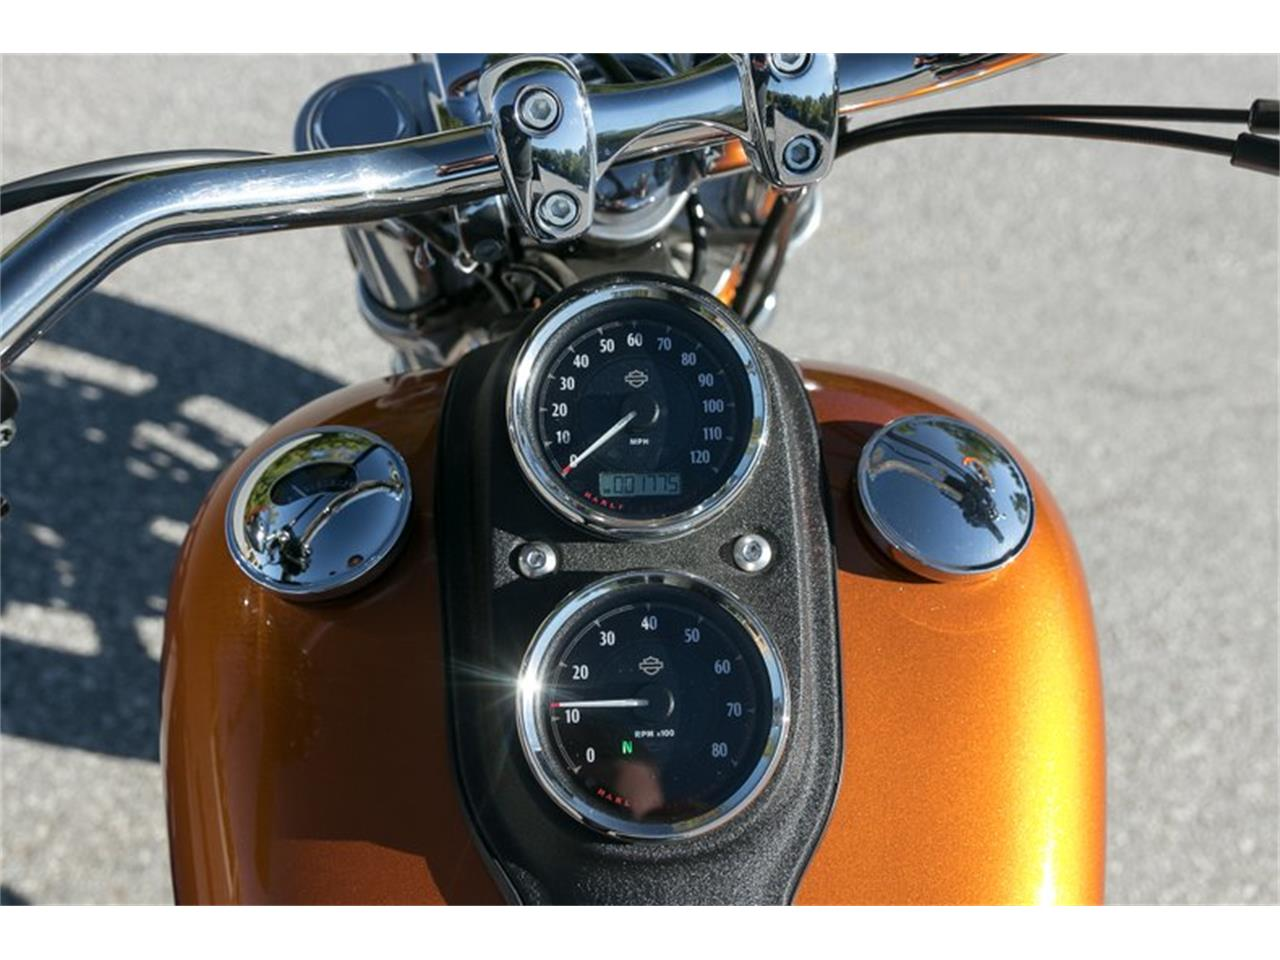 Large Picture of '14 Harley-Davidson Custom located in St. Charles Missouri - $9,995.00 Offered by Fast Lane Classic Cars Inc. - Q54K